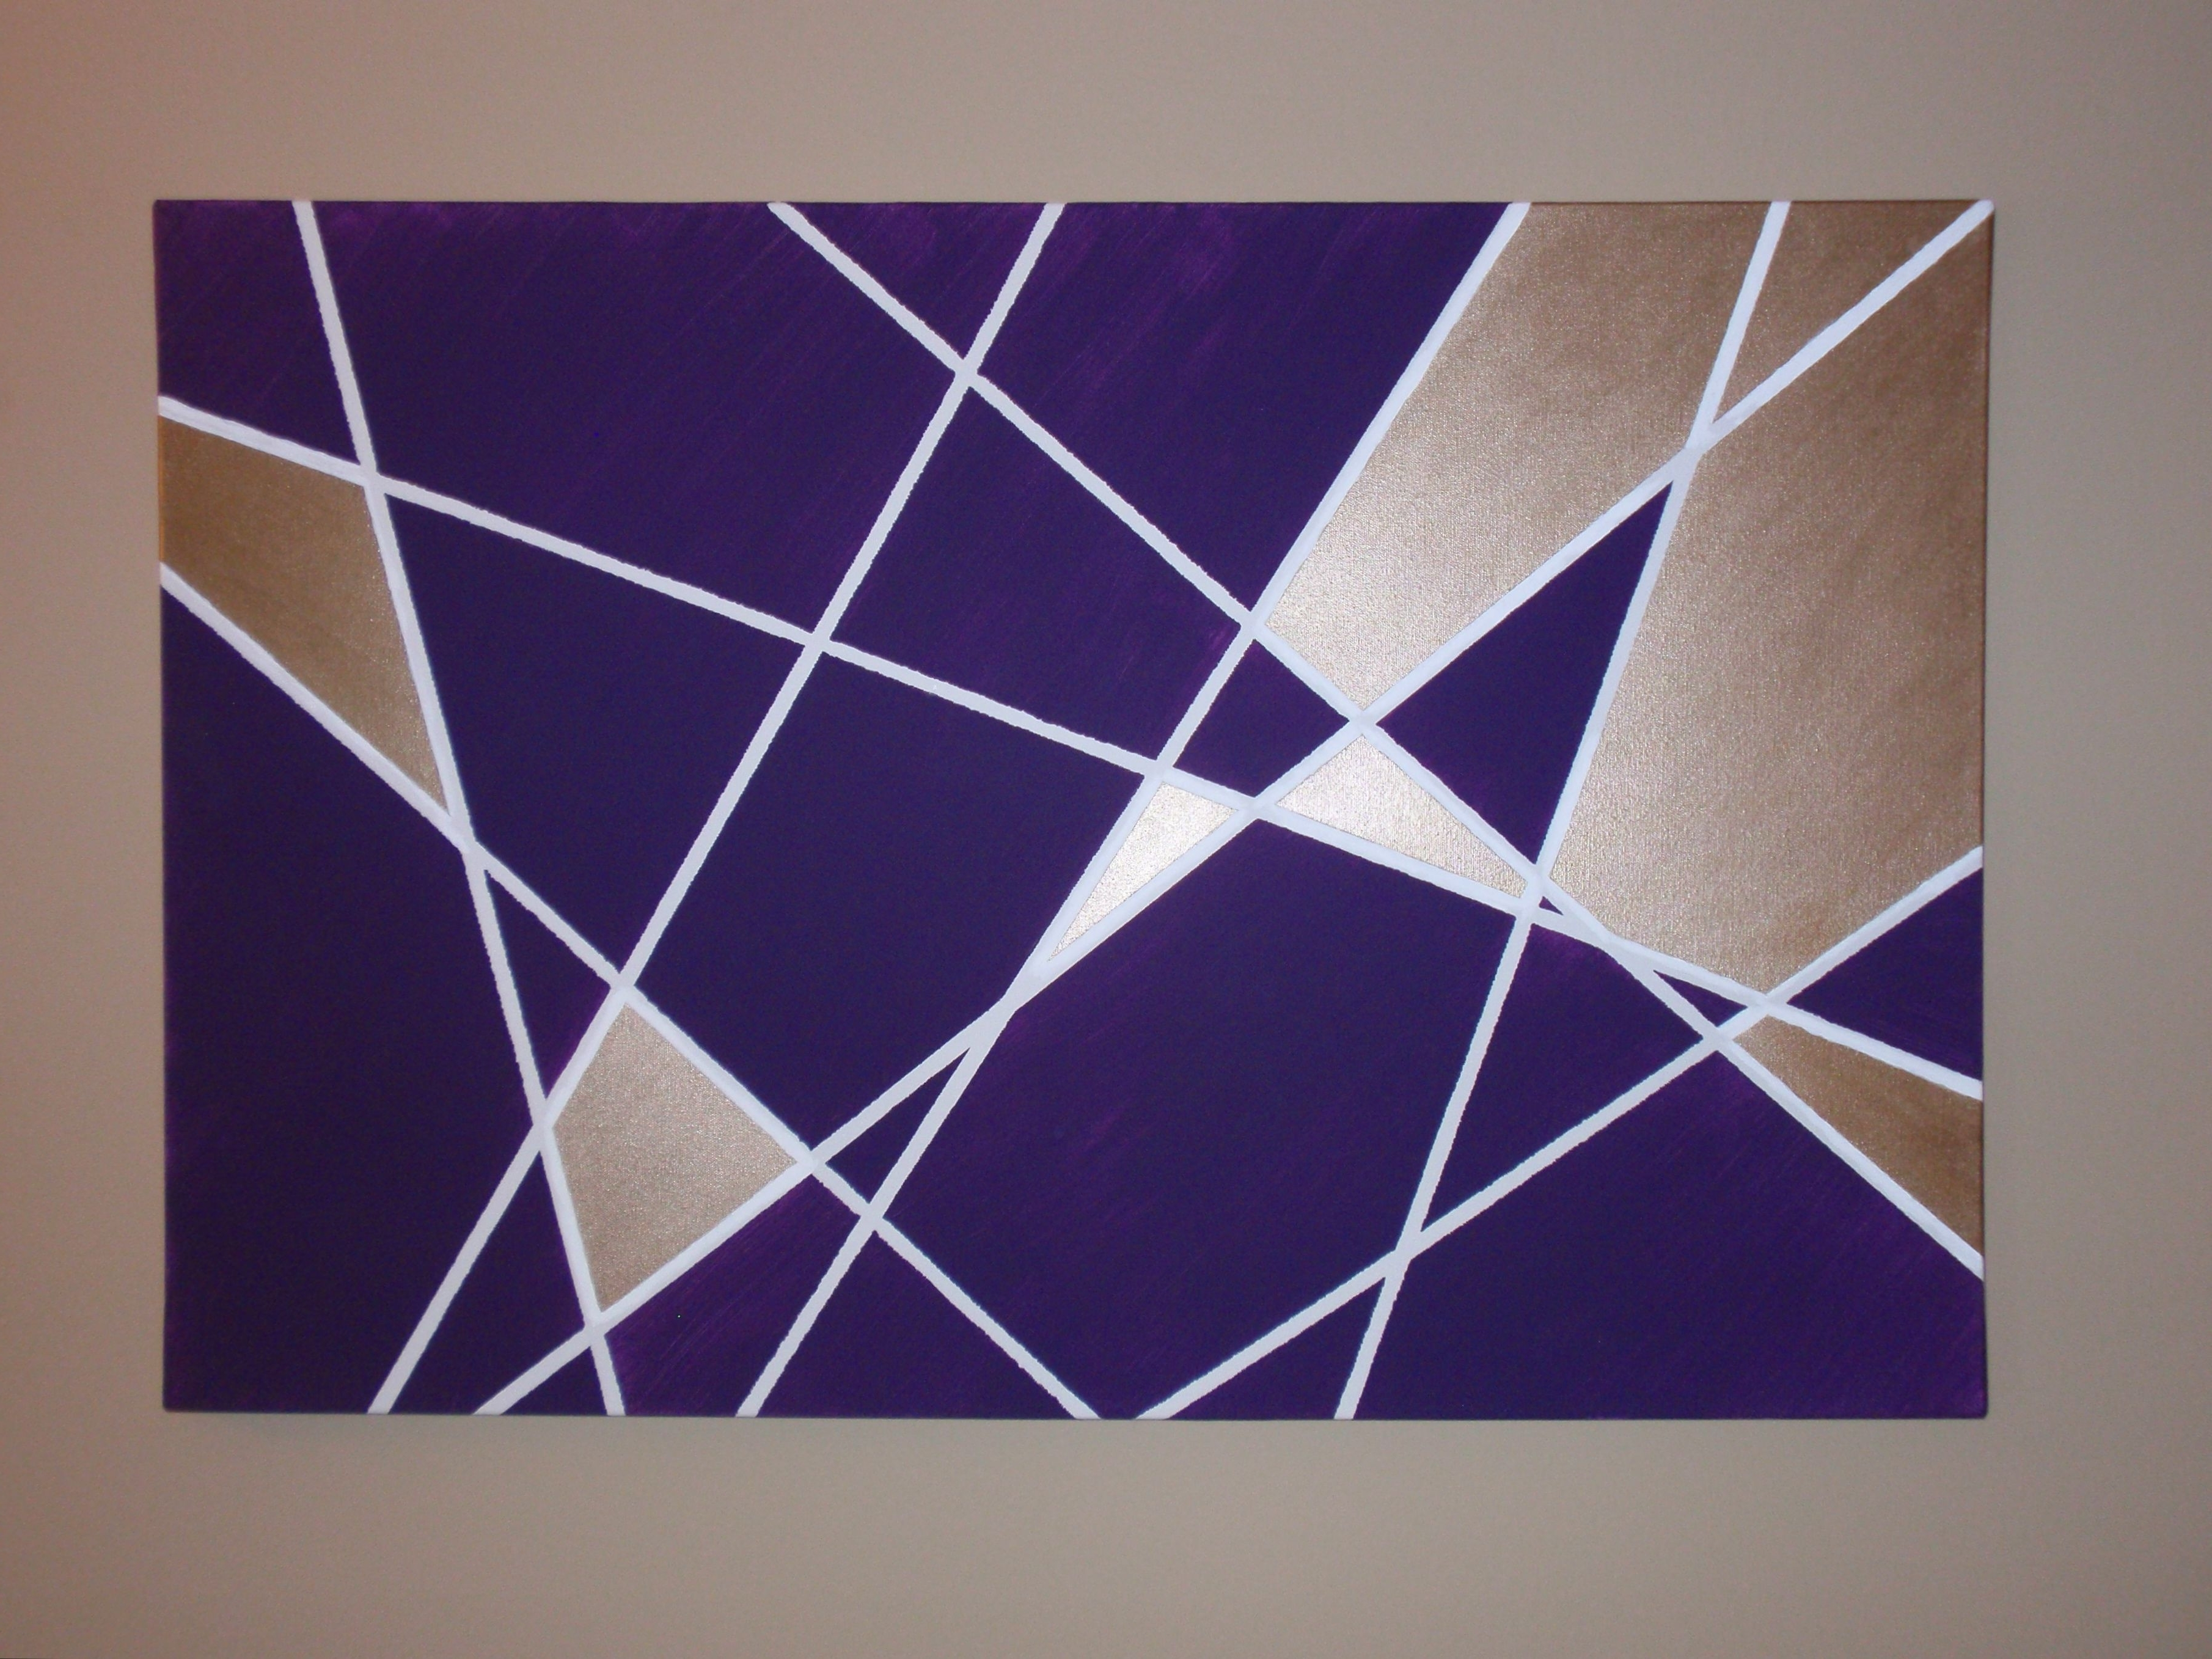 Pinterest Within Most Up To Date Geometric Wall Art (View 4 of 15)